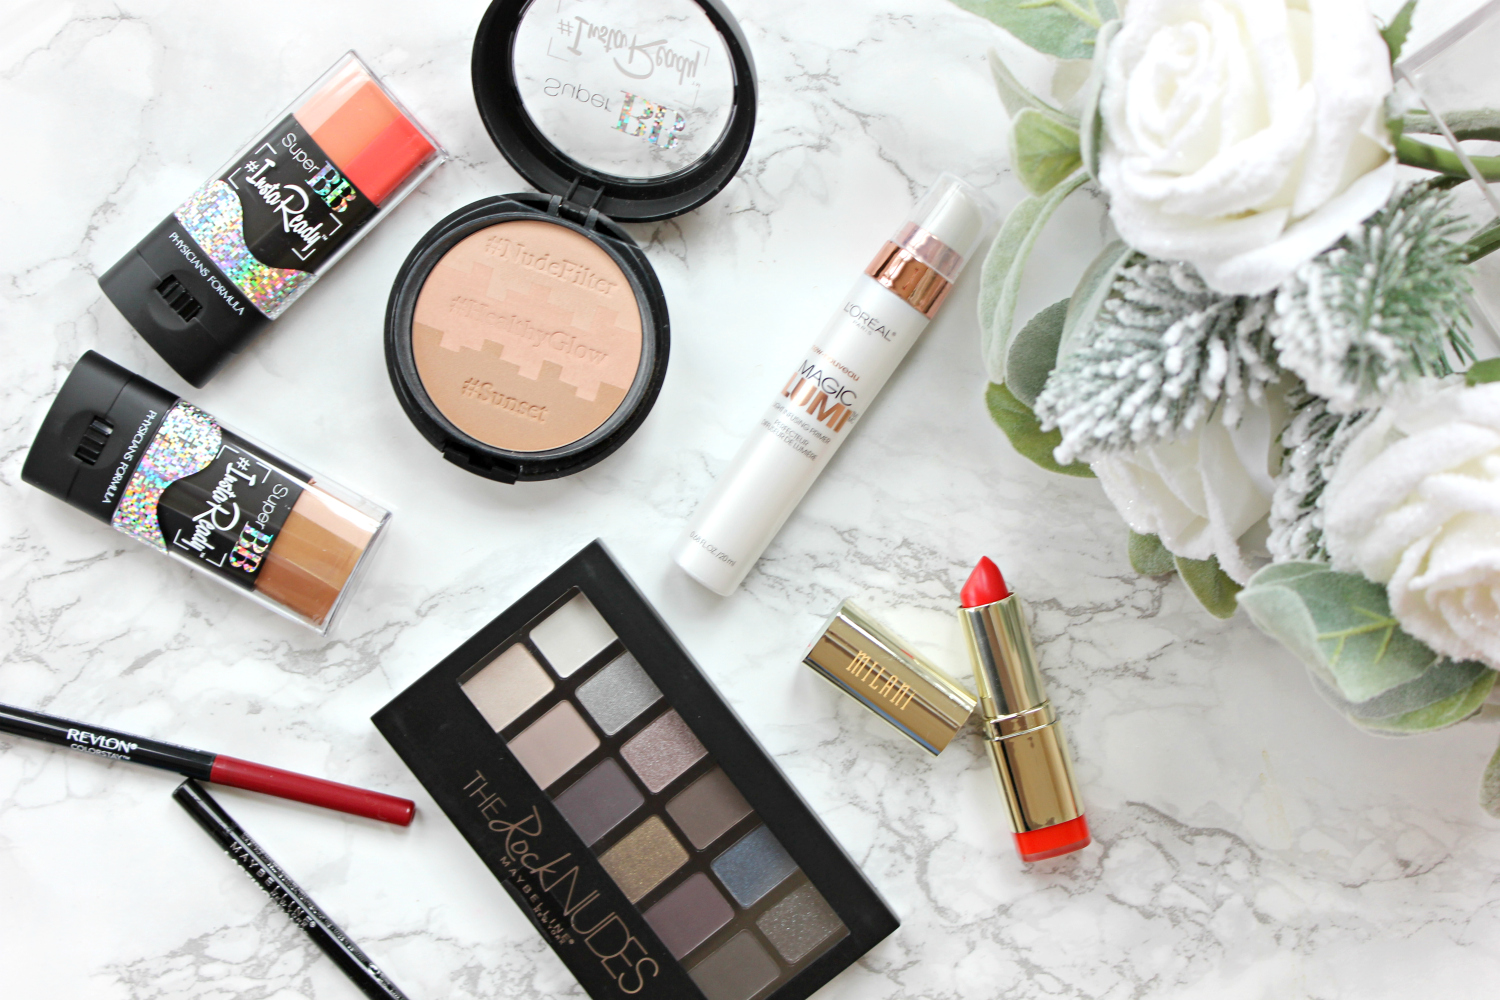 10 tips for looking better in holiday photos, featuring my picks for the best drugstore makeup for photos from CVS